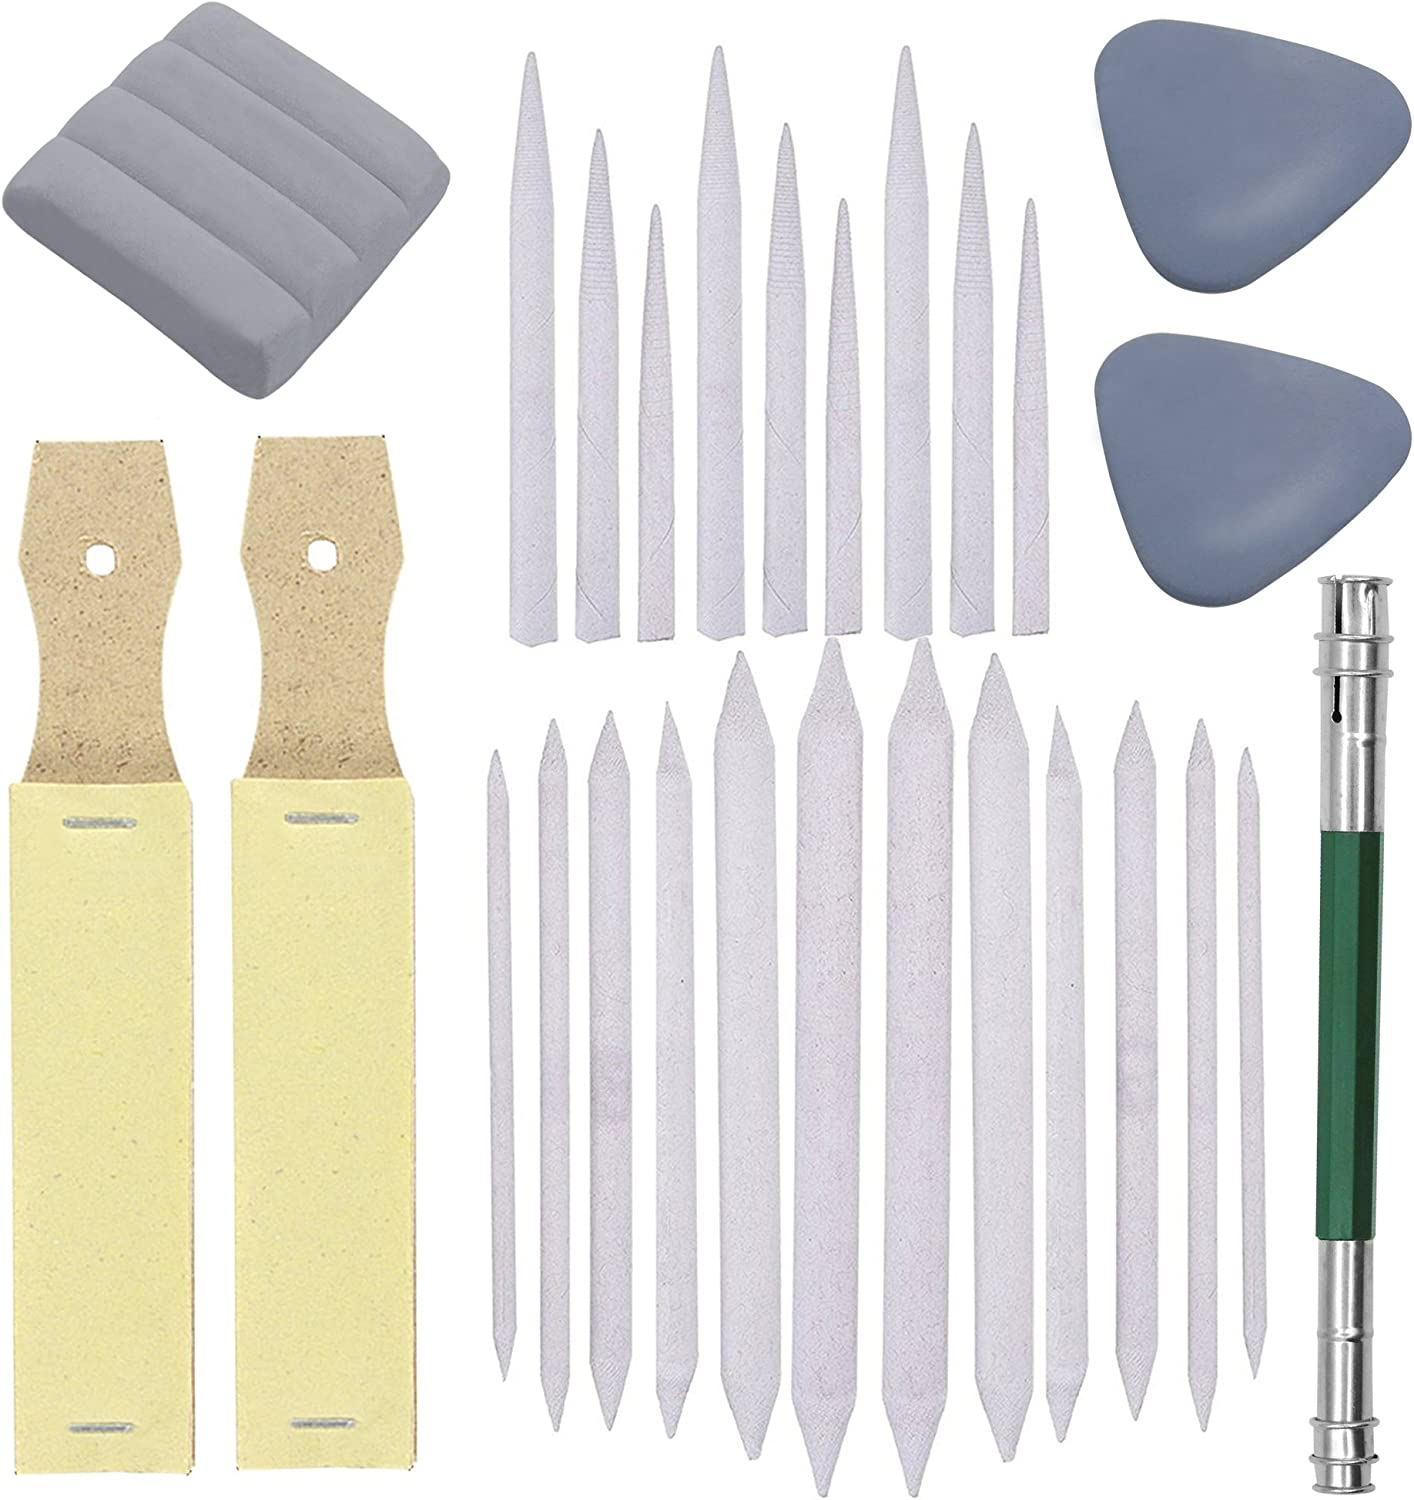 Doubletwo2 Set of 27 Blending Stumps Tortillions Set Pieces Sandpaper Pencil Sharpener and One Pencil Extension Tool Drawing Art kneaded Erasers and Gloss Erasers for Student Sketch Drawing